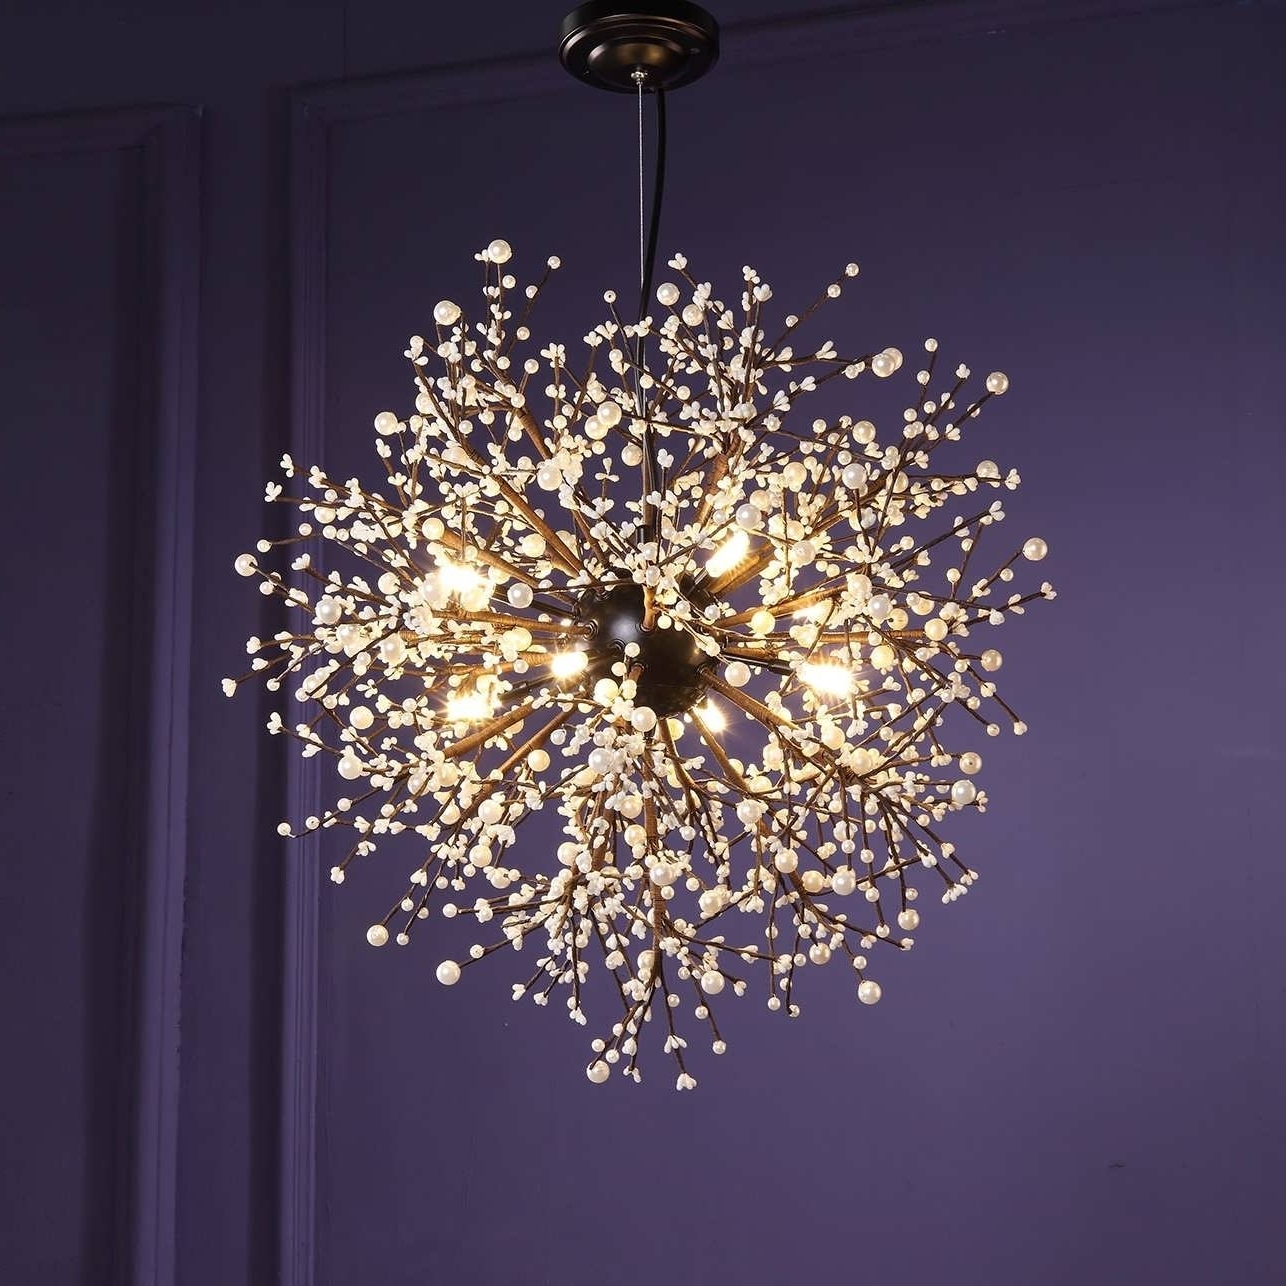 Popular Chandeliers Design : Marvelous Amazing Glass Ball Chandelier Light Pertaining To Turquoise Crystal Chandelier Lights (View 8 of 20)